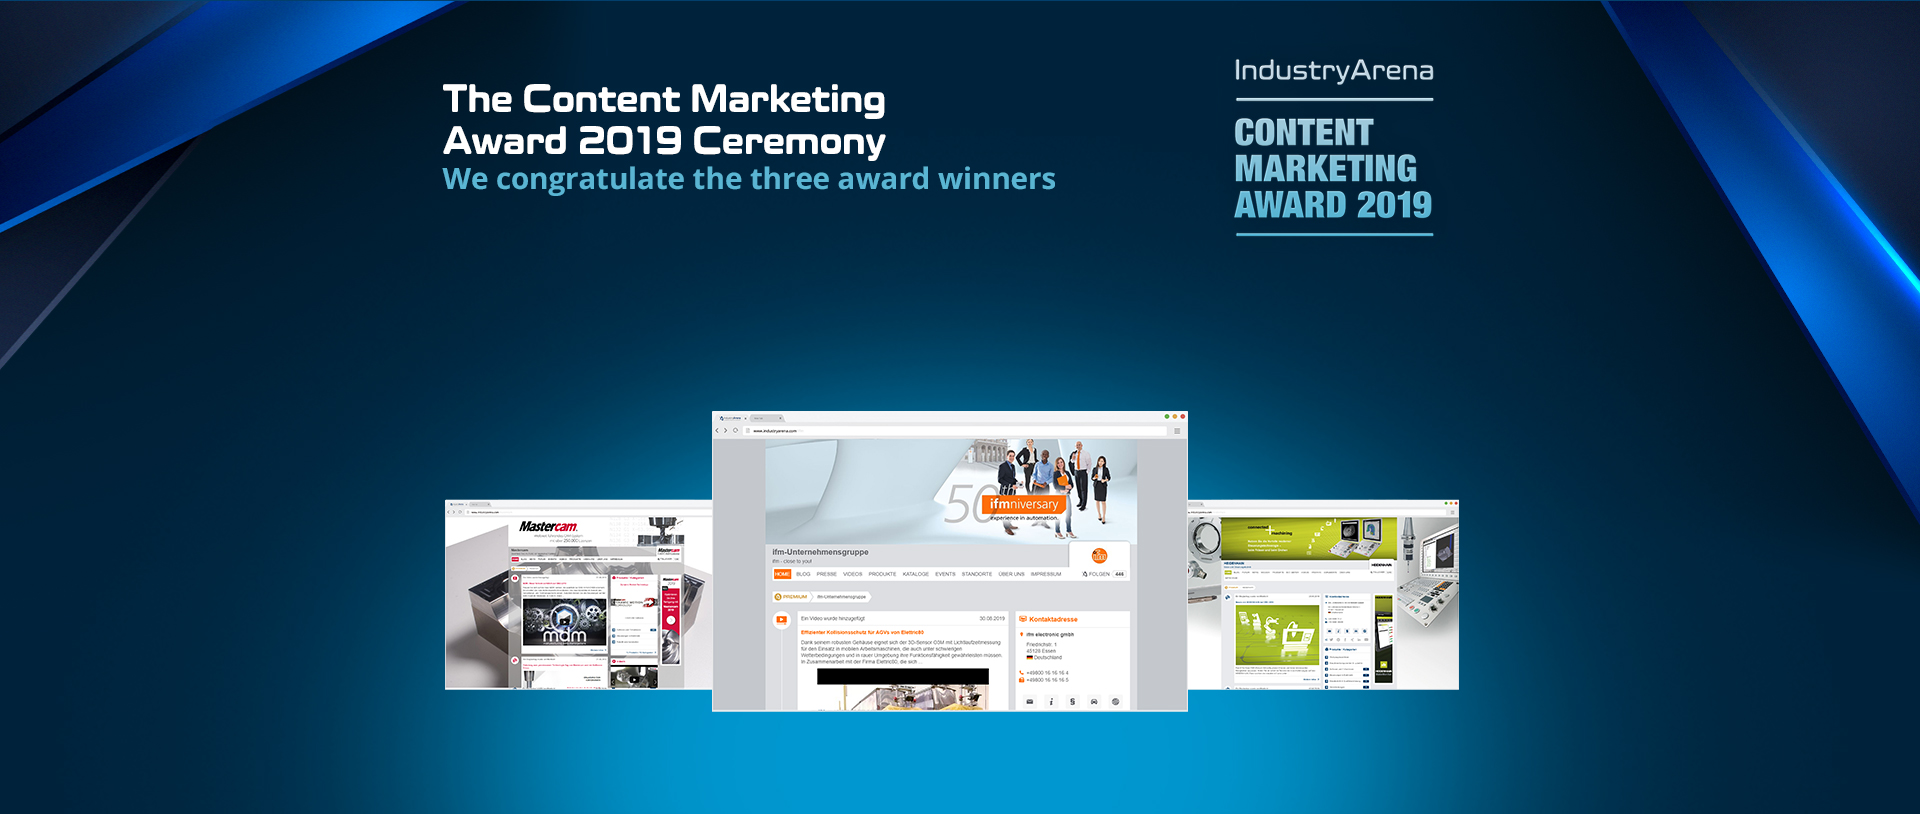 Congratulations to the three Content Marketing winners in 2019